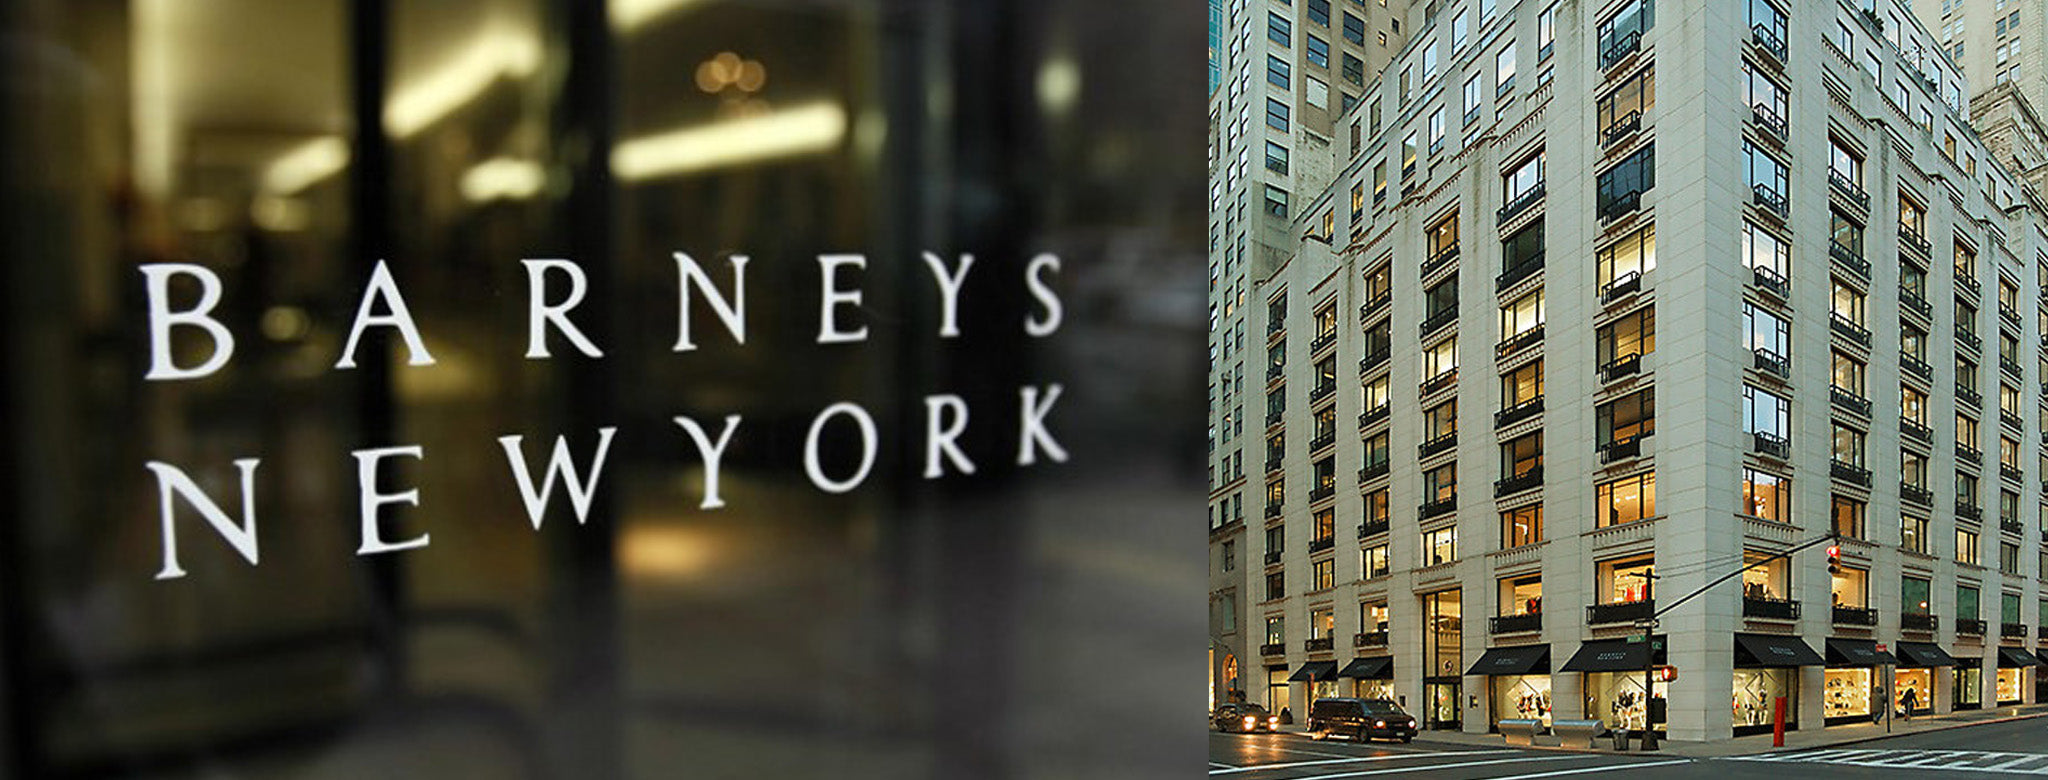 Barneys New York building